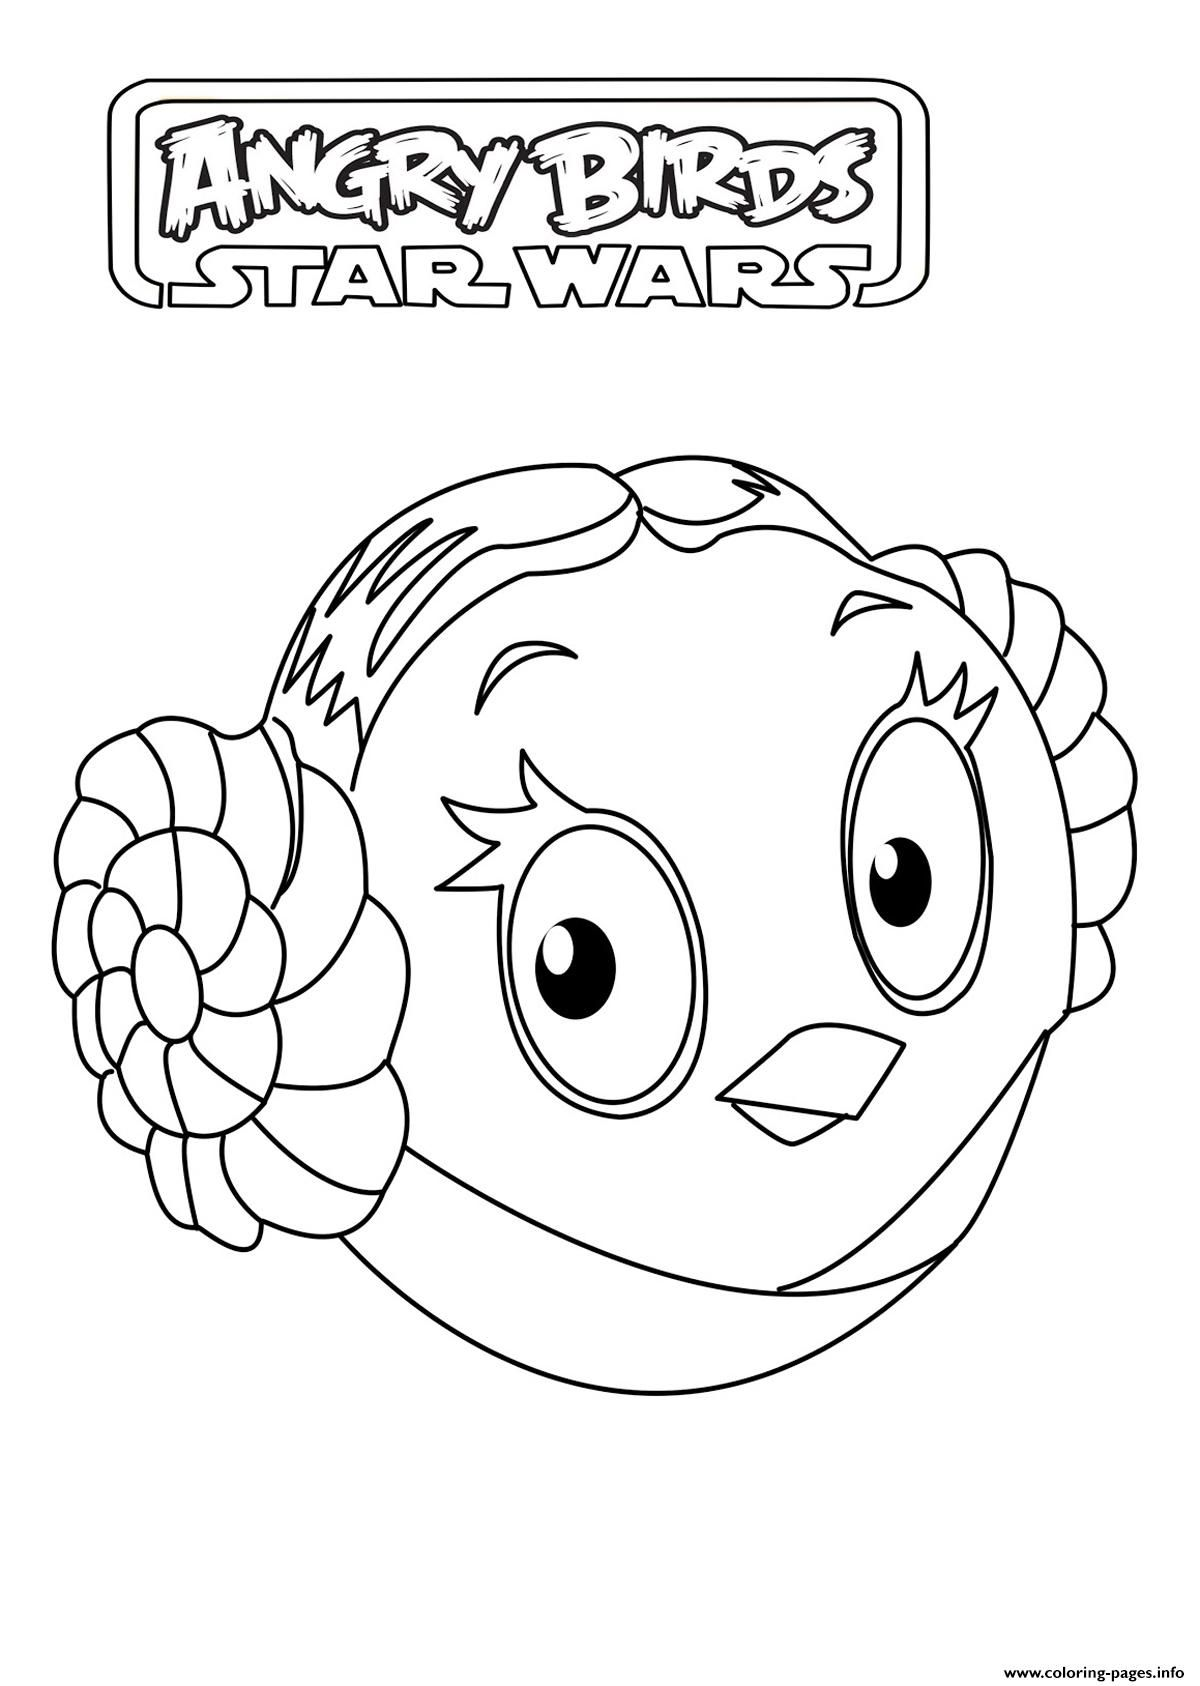 Print Kids Angry Birds Star Wars Leia Organa Coloring